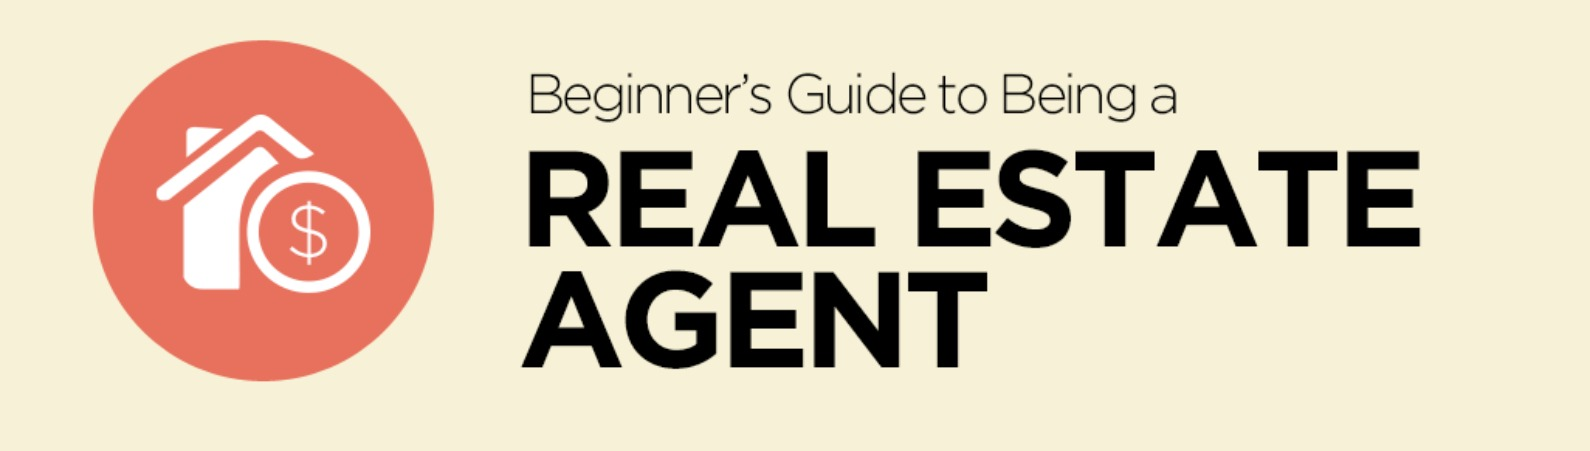 The Beginner's Guide to Being a Real Estate Agent